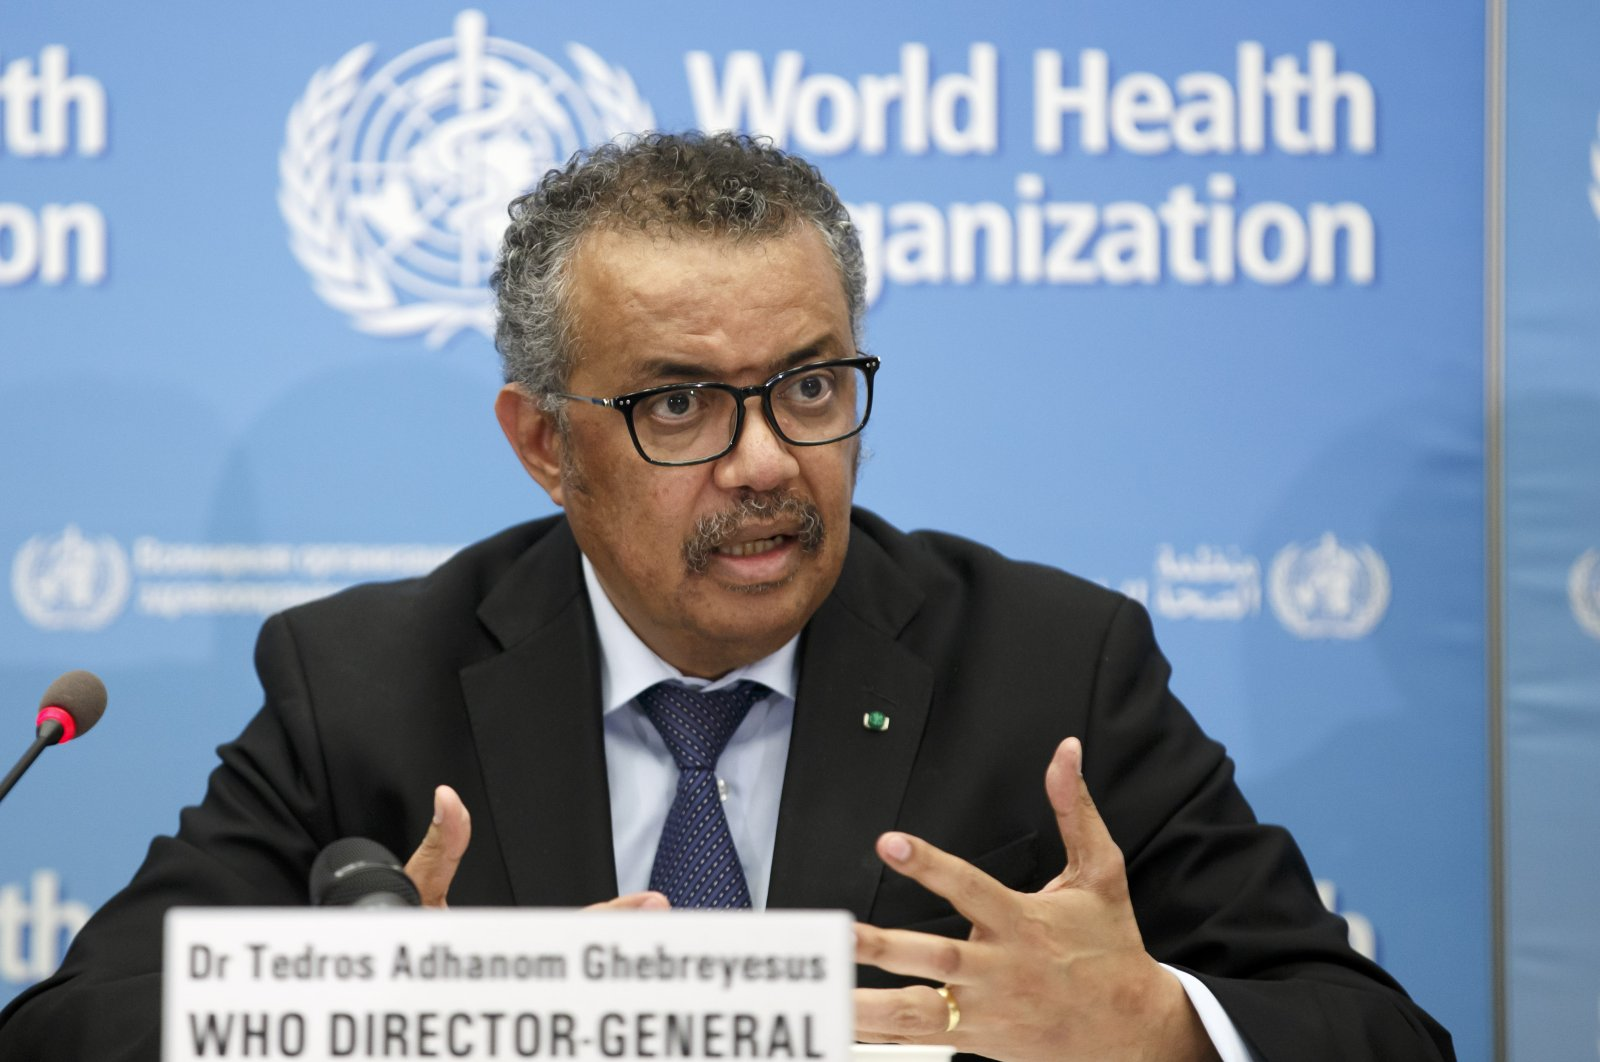 Tedros Adhanom Ghebreyesus, Director General of the World Health Organization (WHO), addresses a press conference on COVID-19 at the World Health Organization headquarters, Geneva, Feb. 24, 2020. (AP Photo)